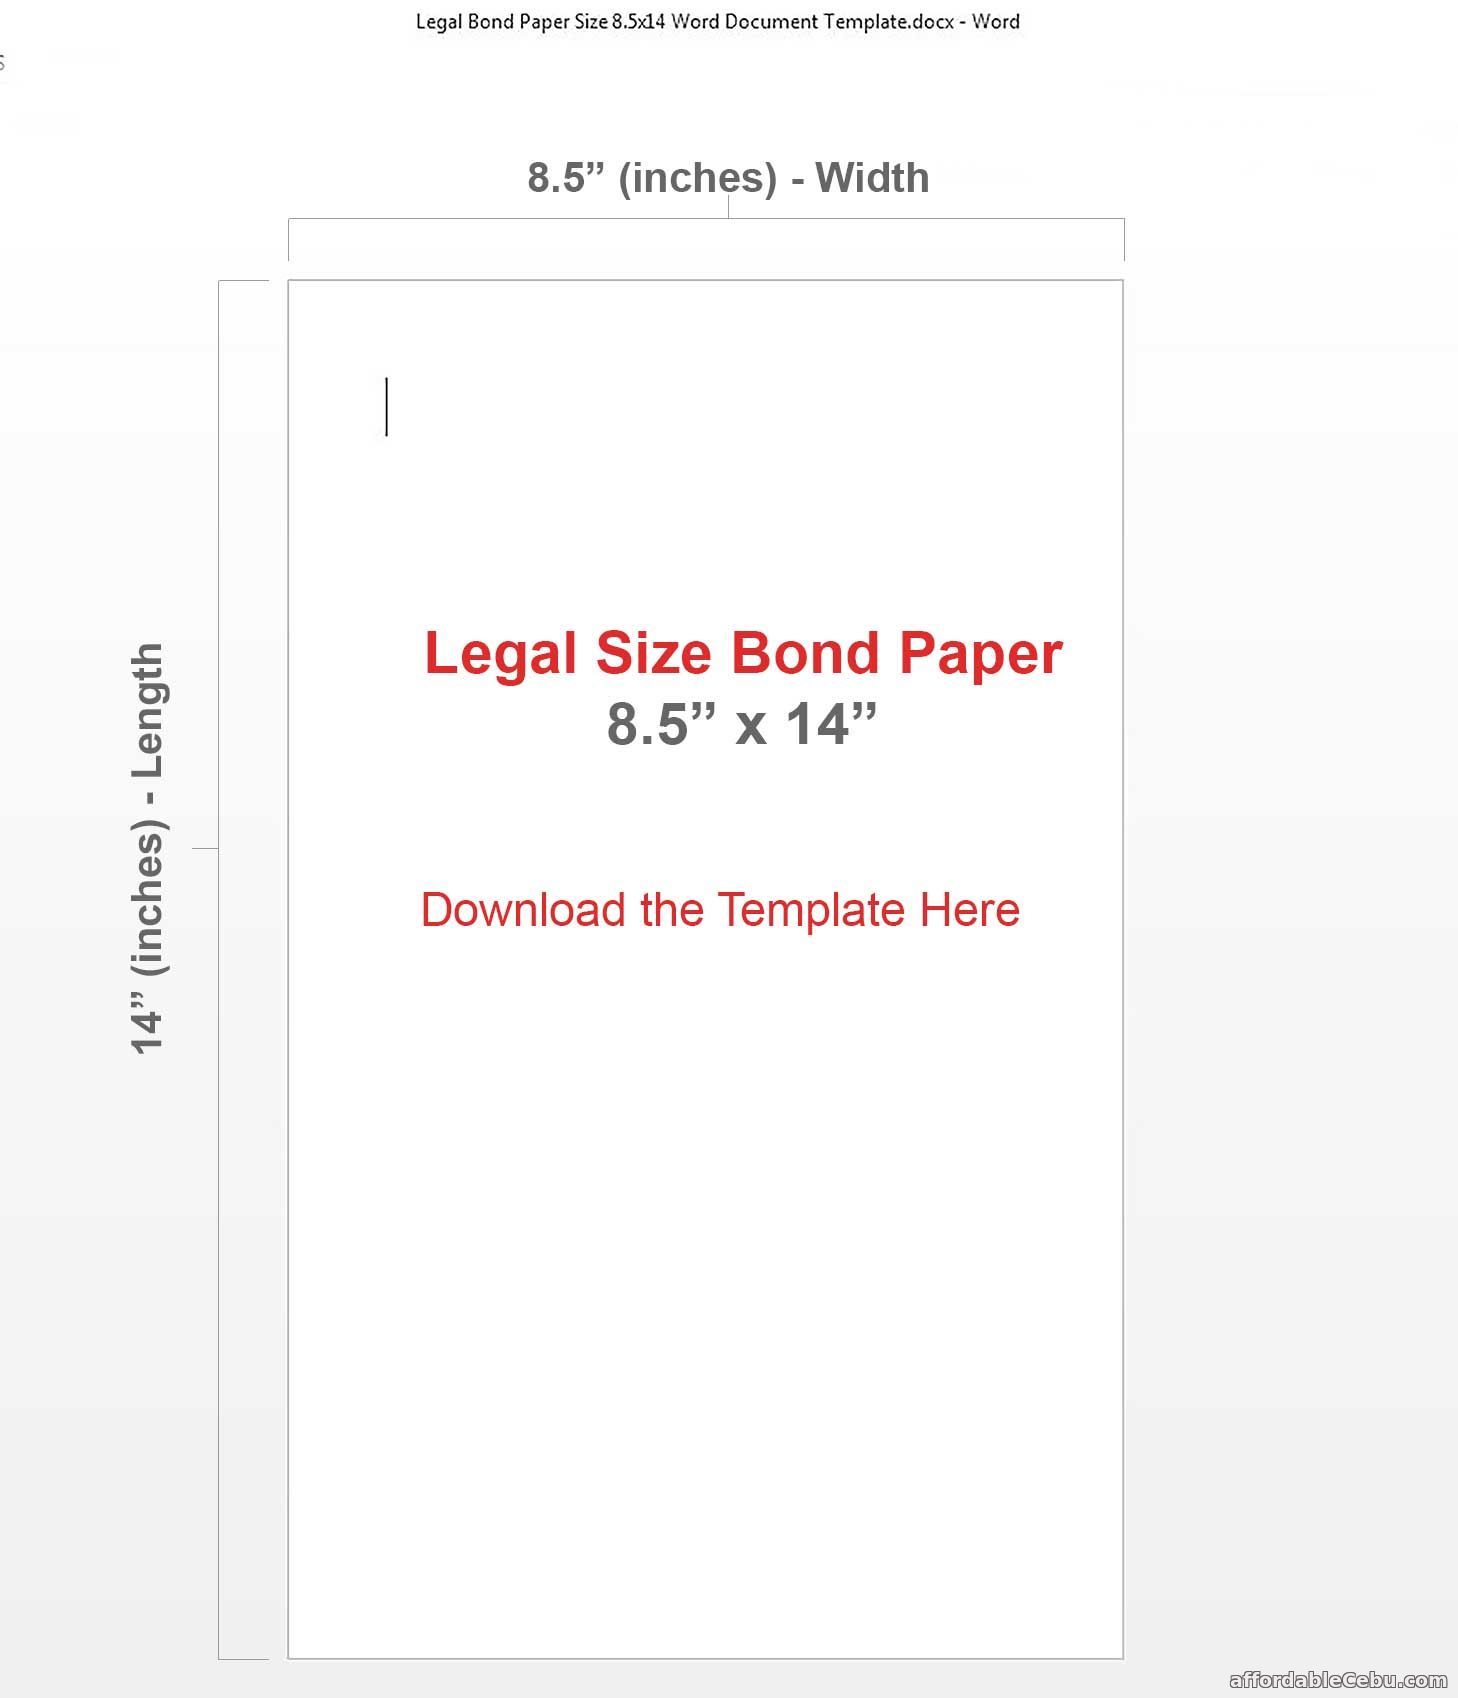 Legal Size Bond Paper 8.5 x 14